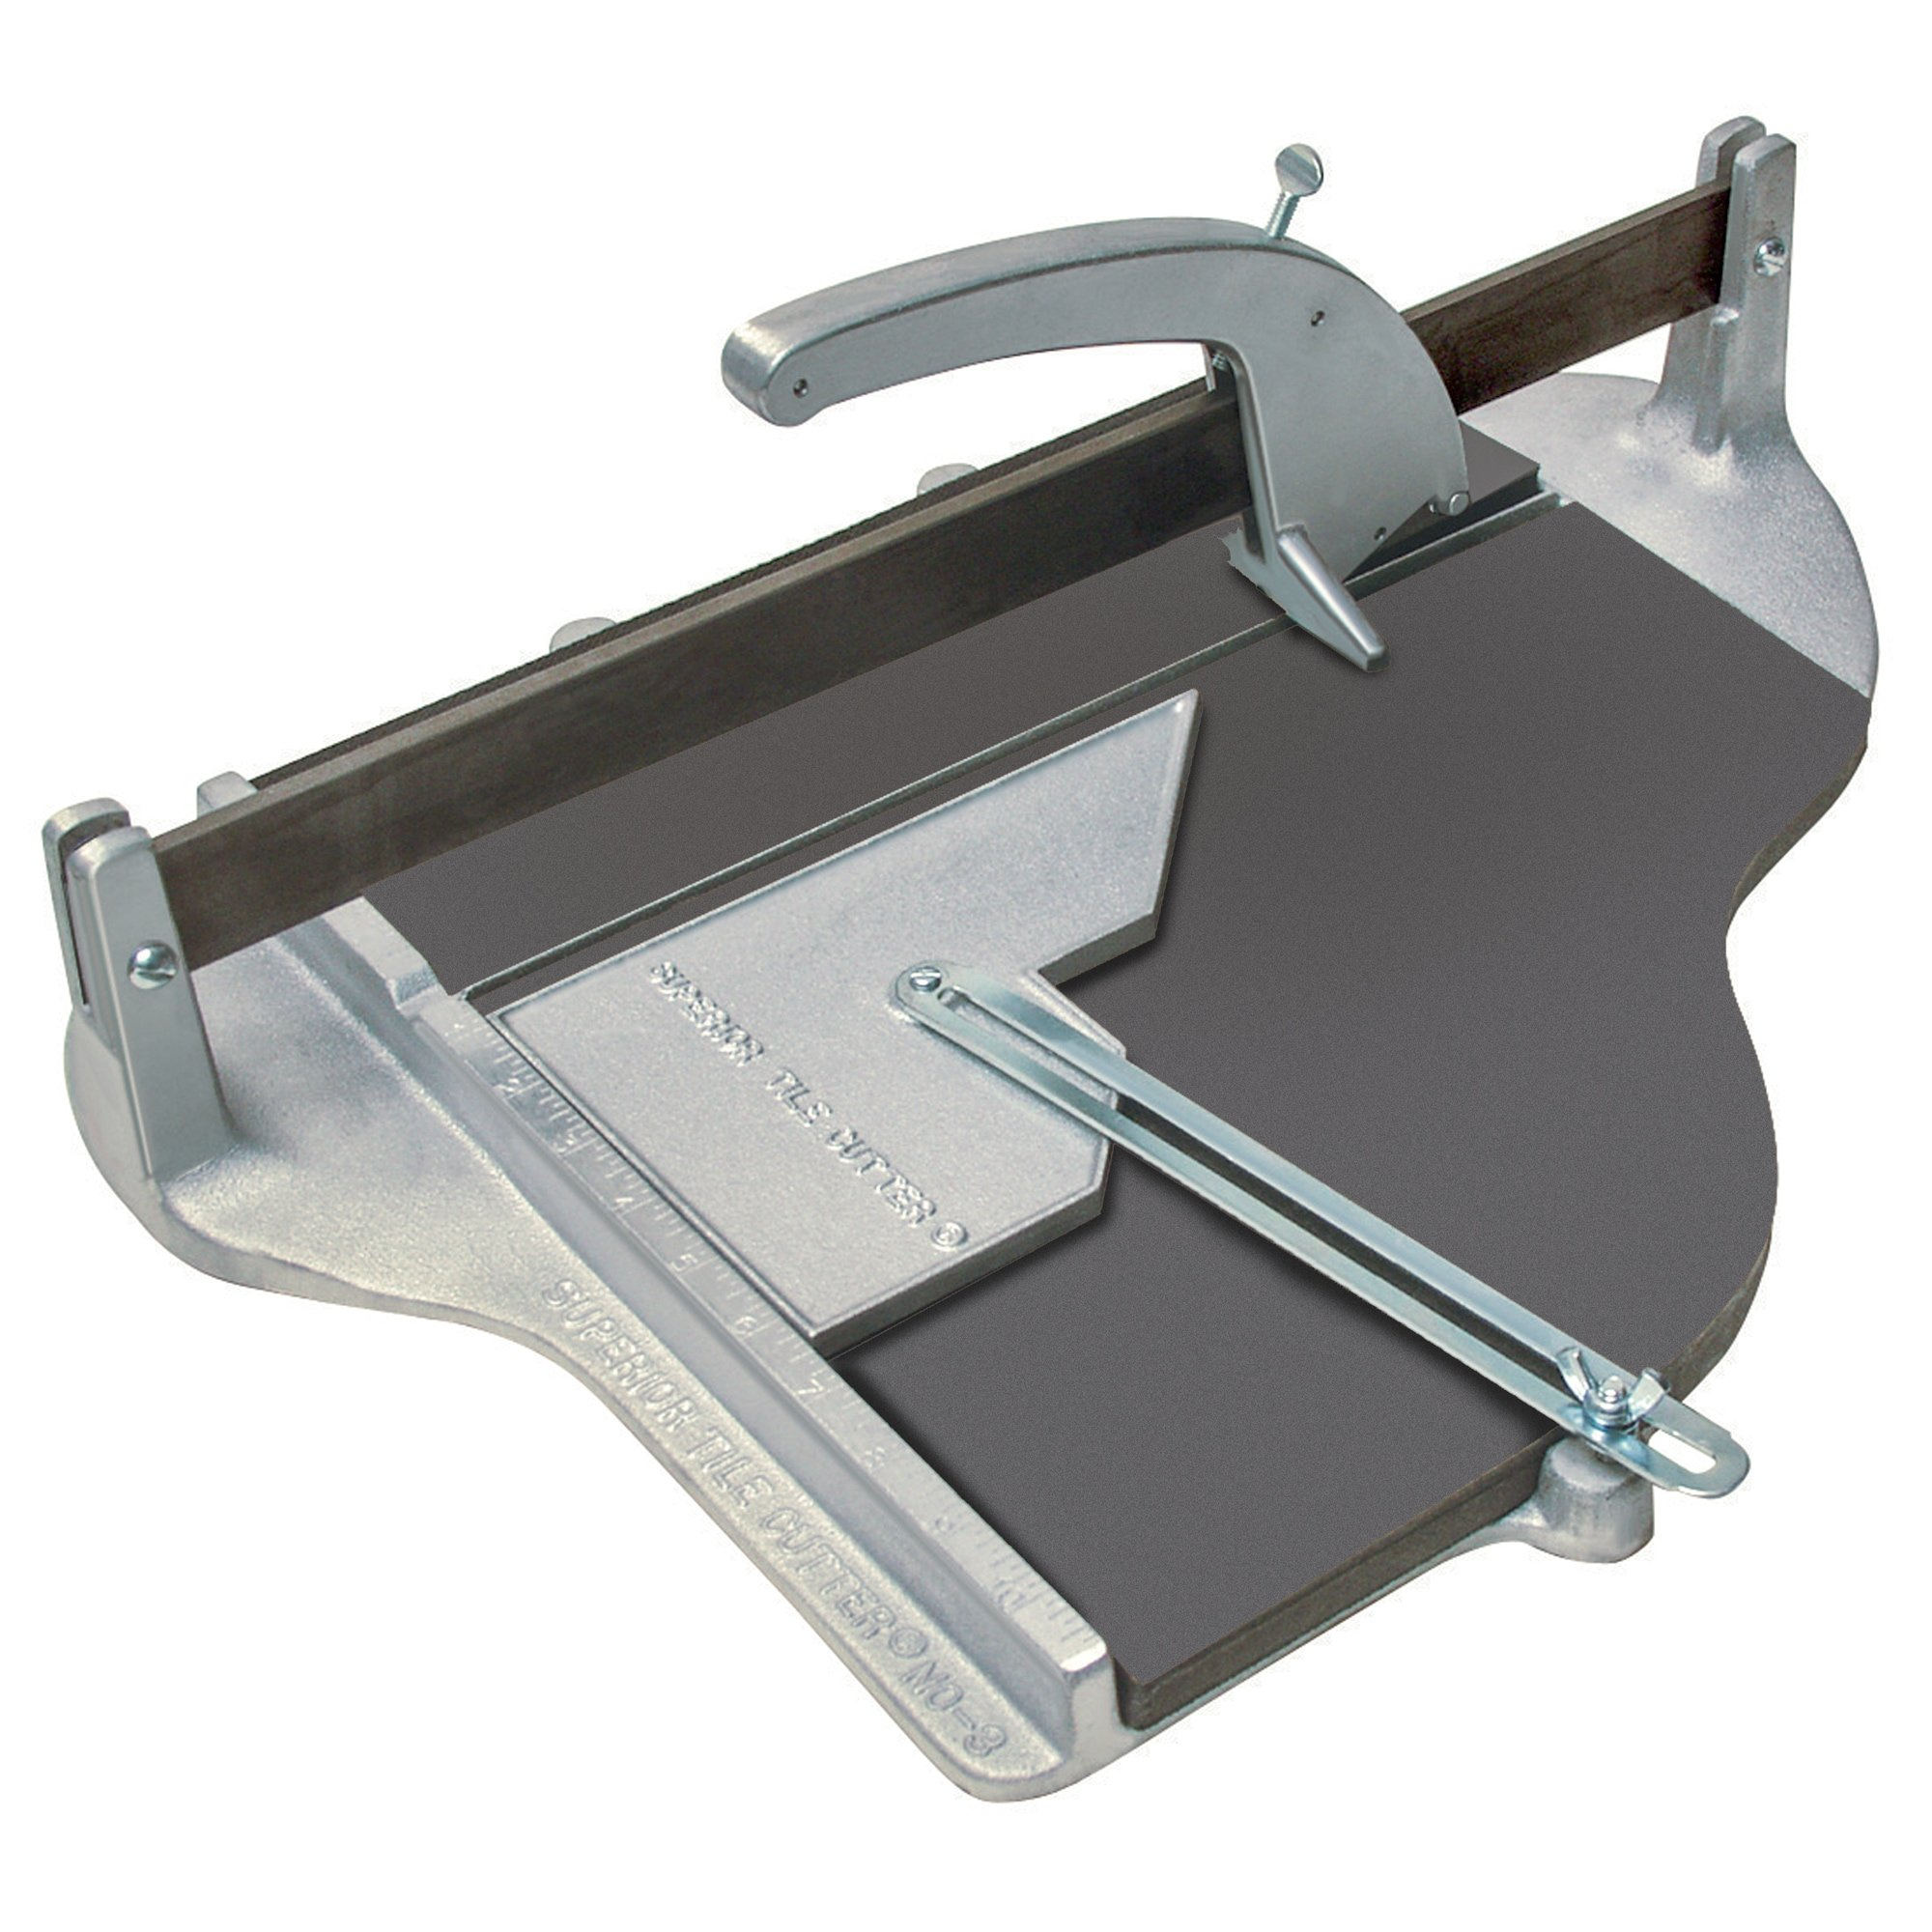 Kraft Tool ST007 Superior Tile Cutter and Tools Jumbo Tile Cutter with Carbide Cutting Wheel